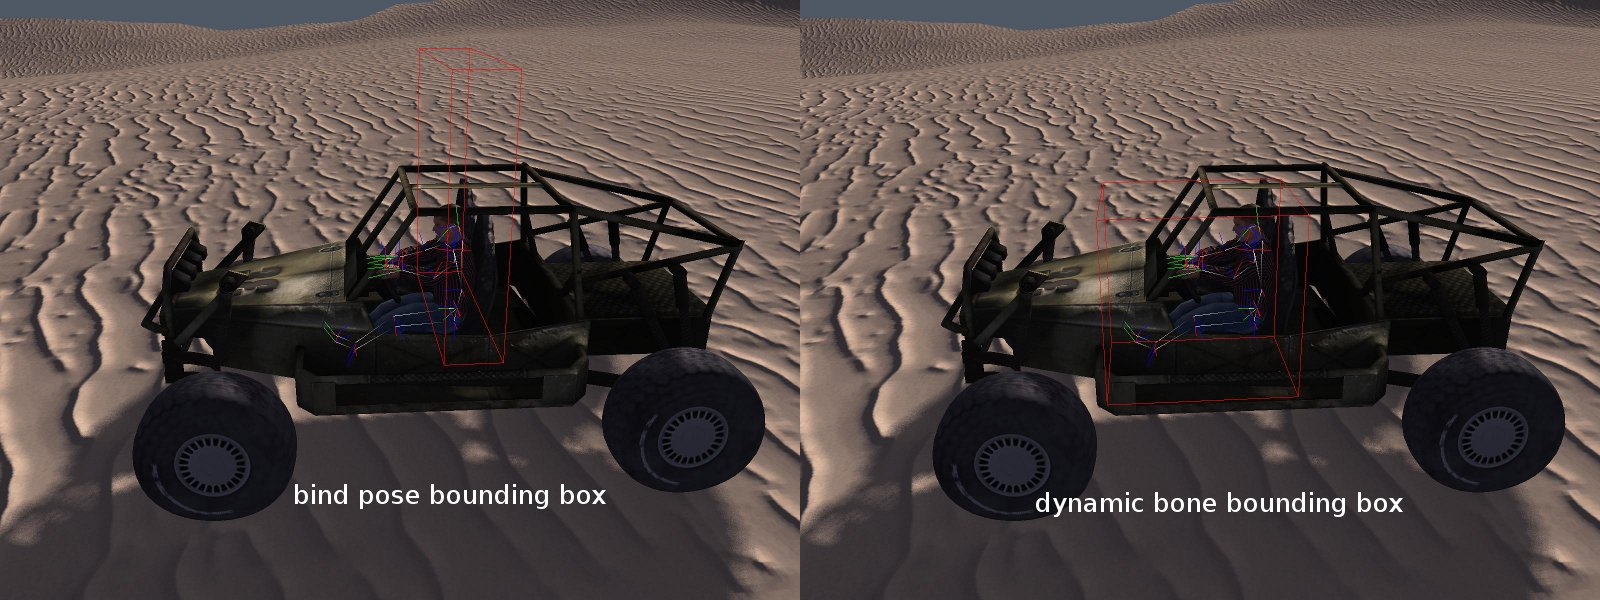 Comparison of bounding box methods